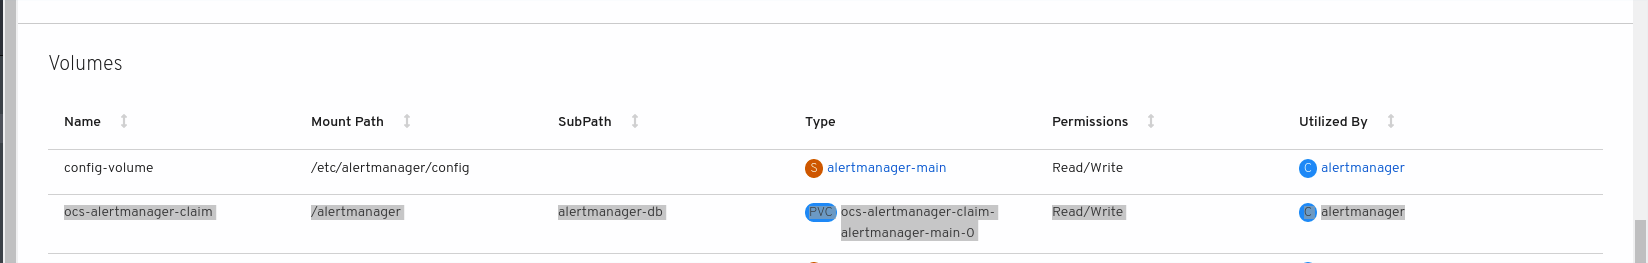 Screenshot of OpenShift Web Console showing persistent volume claim attached to the altermanager pod